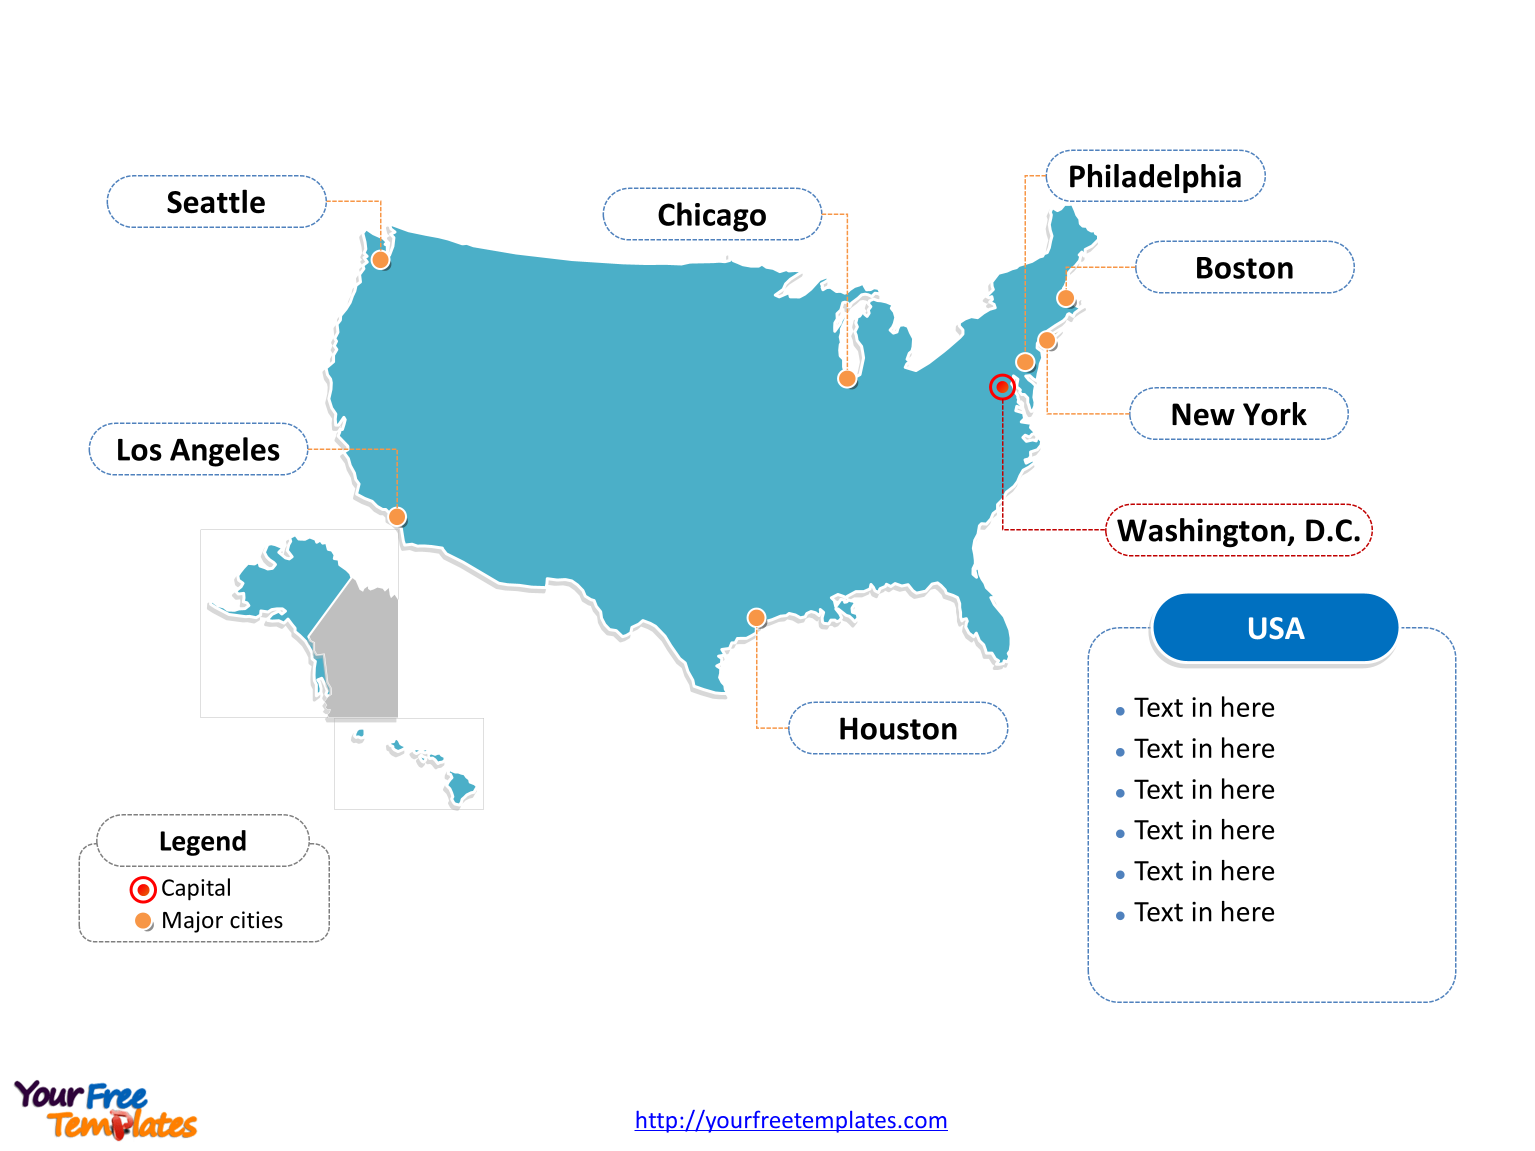 USA PowerPoint map of outline labeled with cities